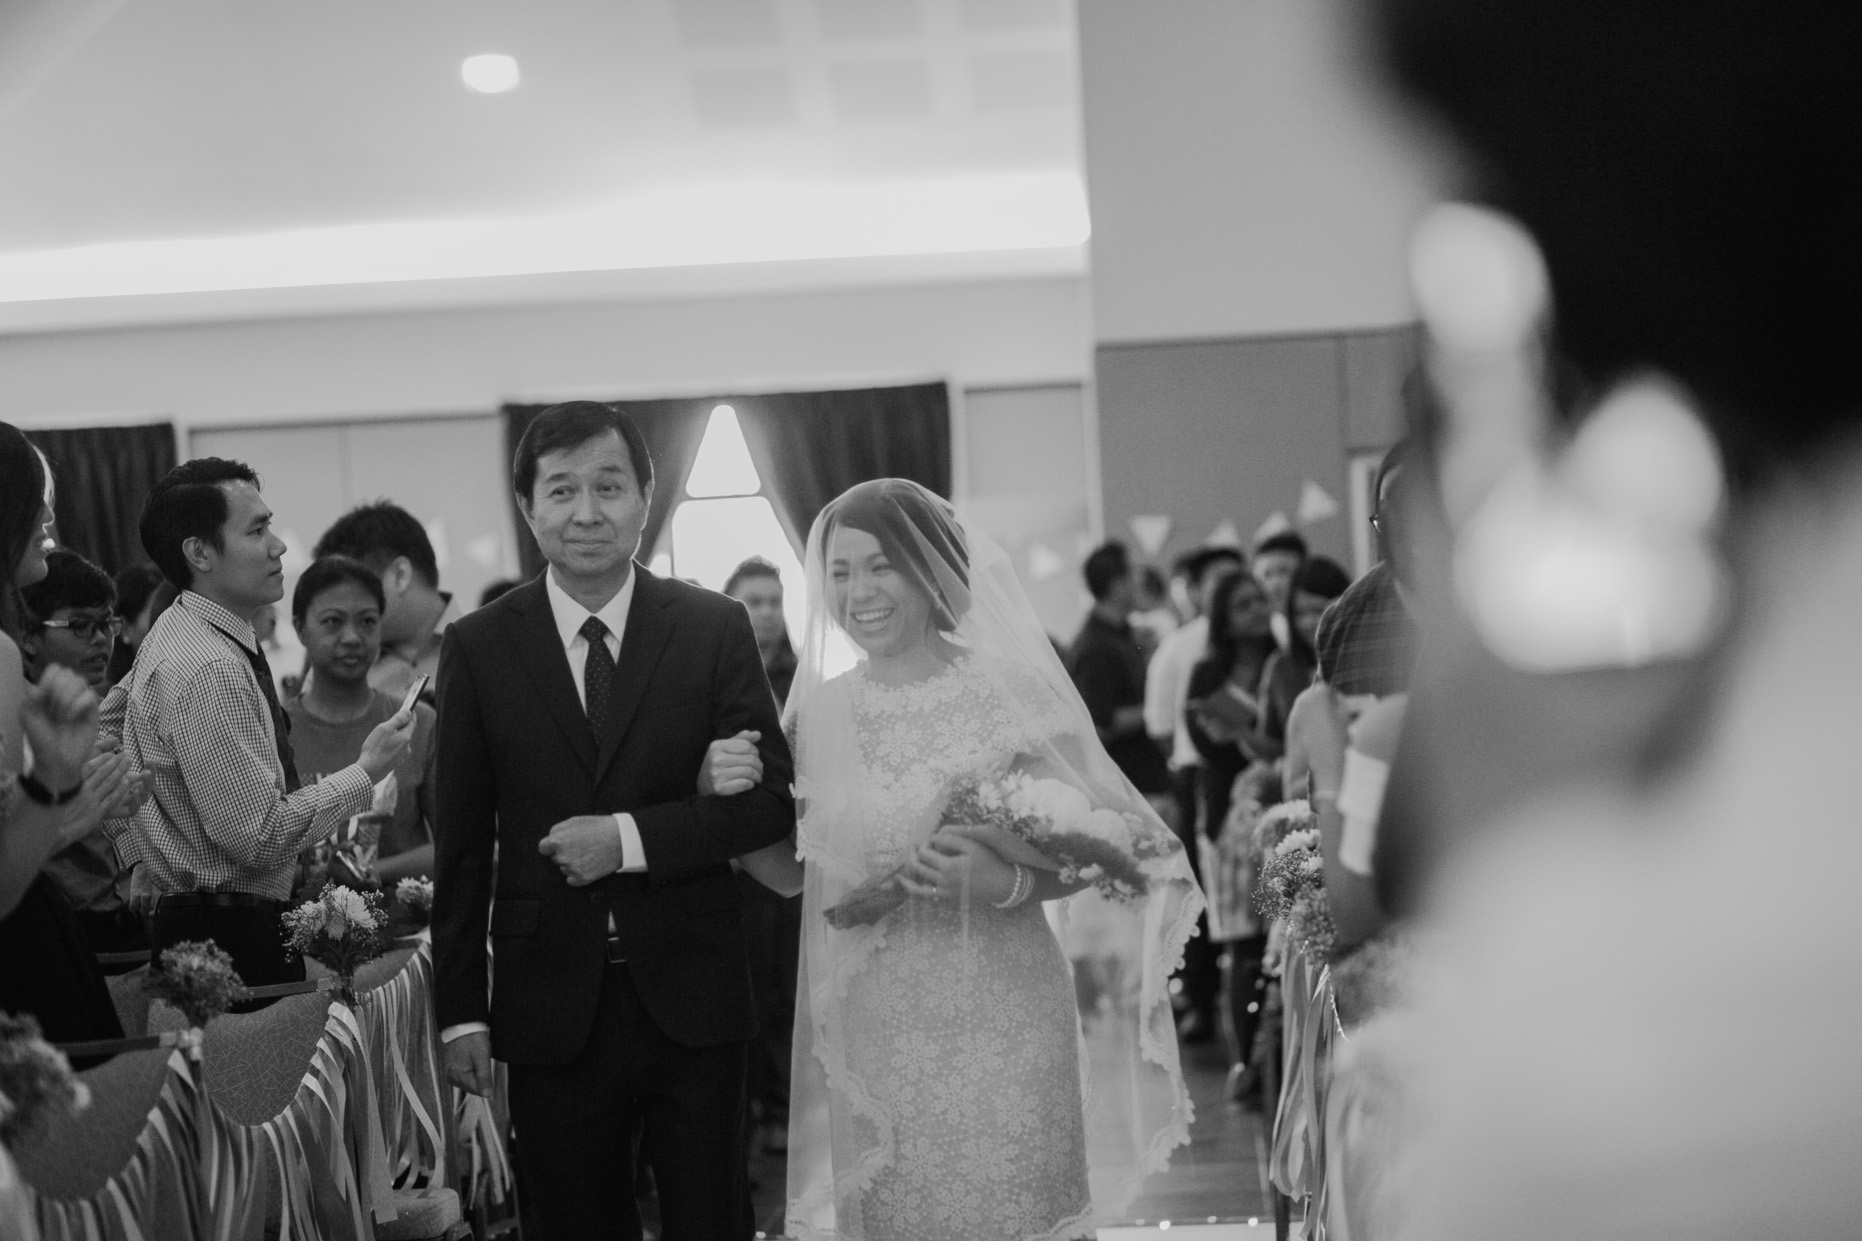 46-hellojanelee-sam grace-malaysia-wedding-day